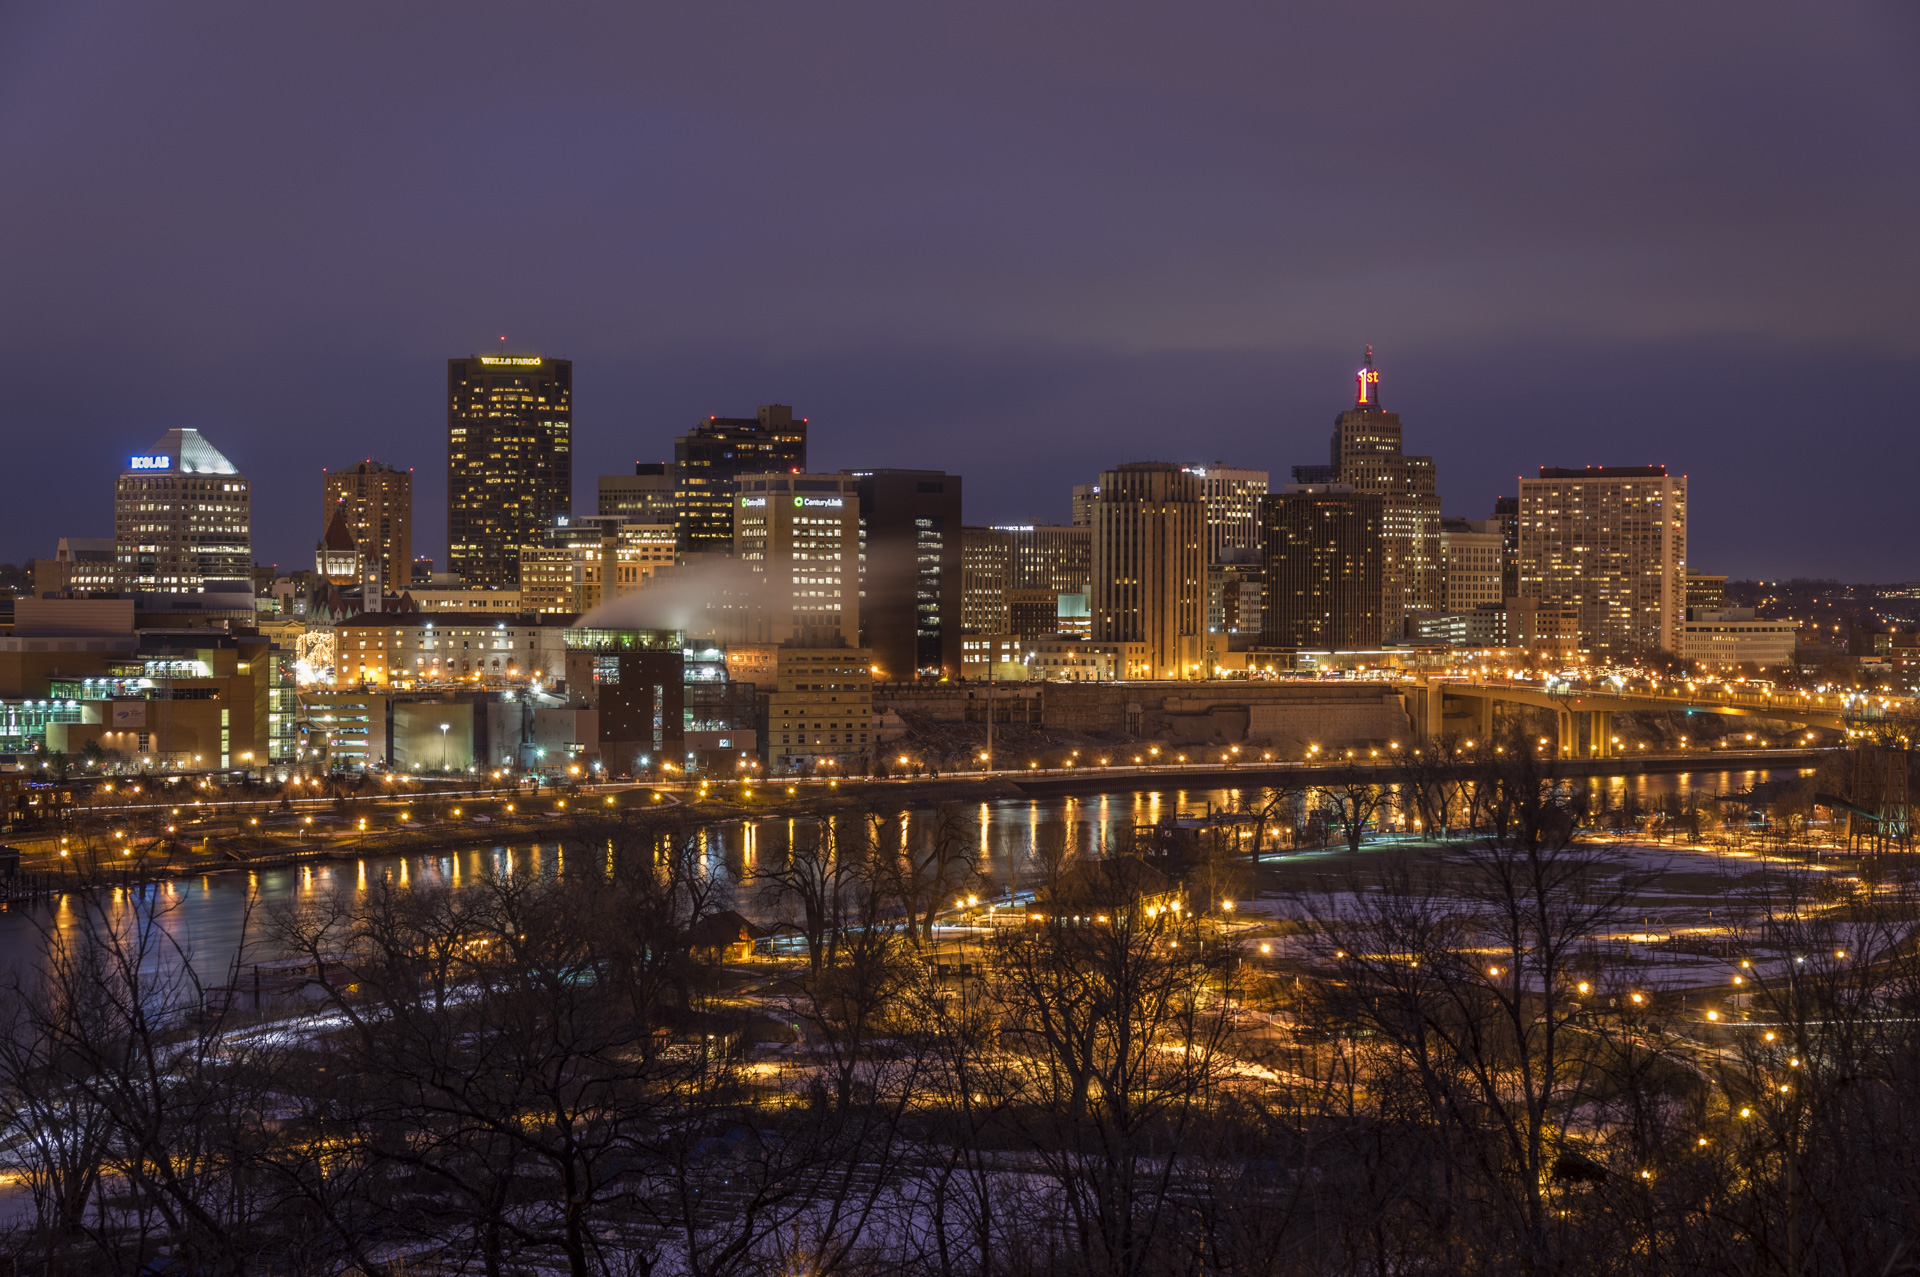 St Paul After Dark - Digital (Night) - Steve Simmer